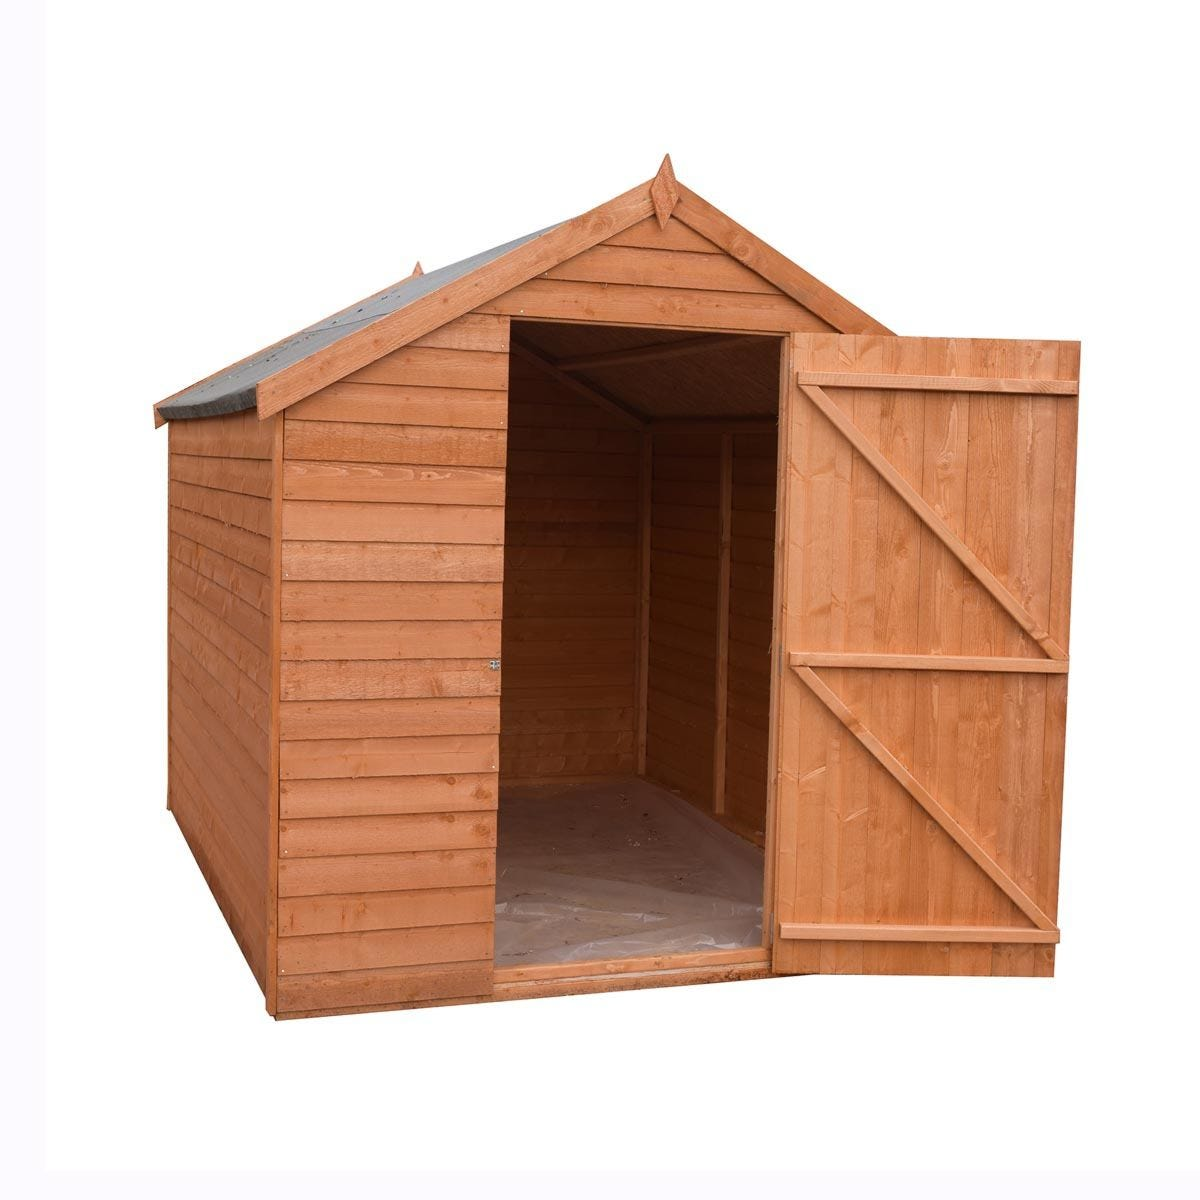 Shire Value Overlap Shed - 7ft x 5ft